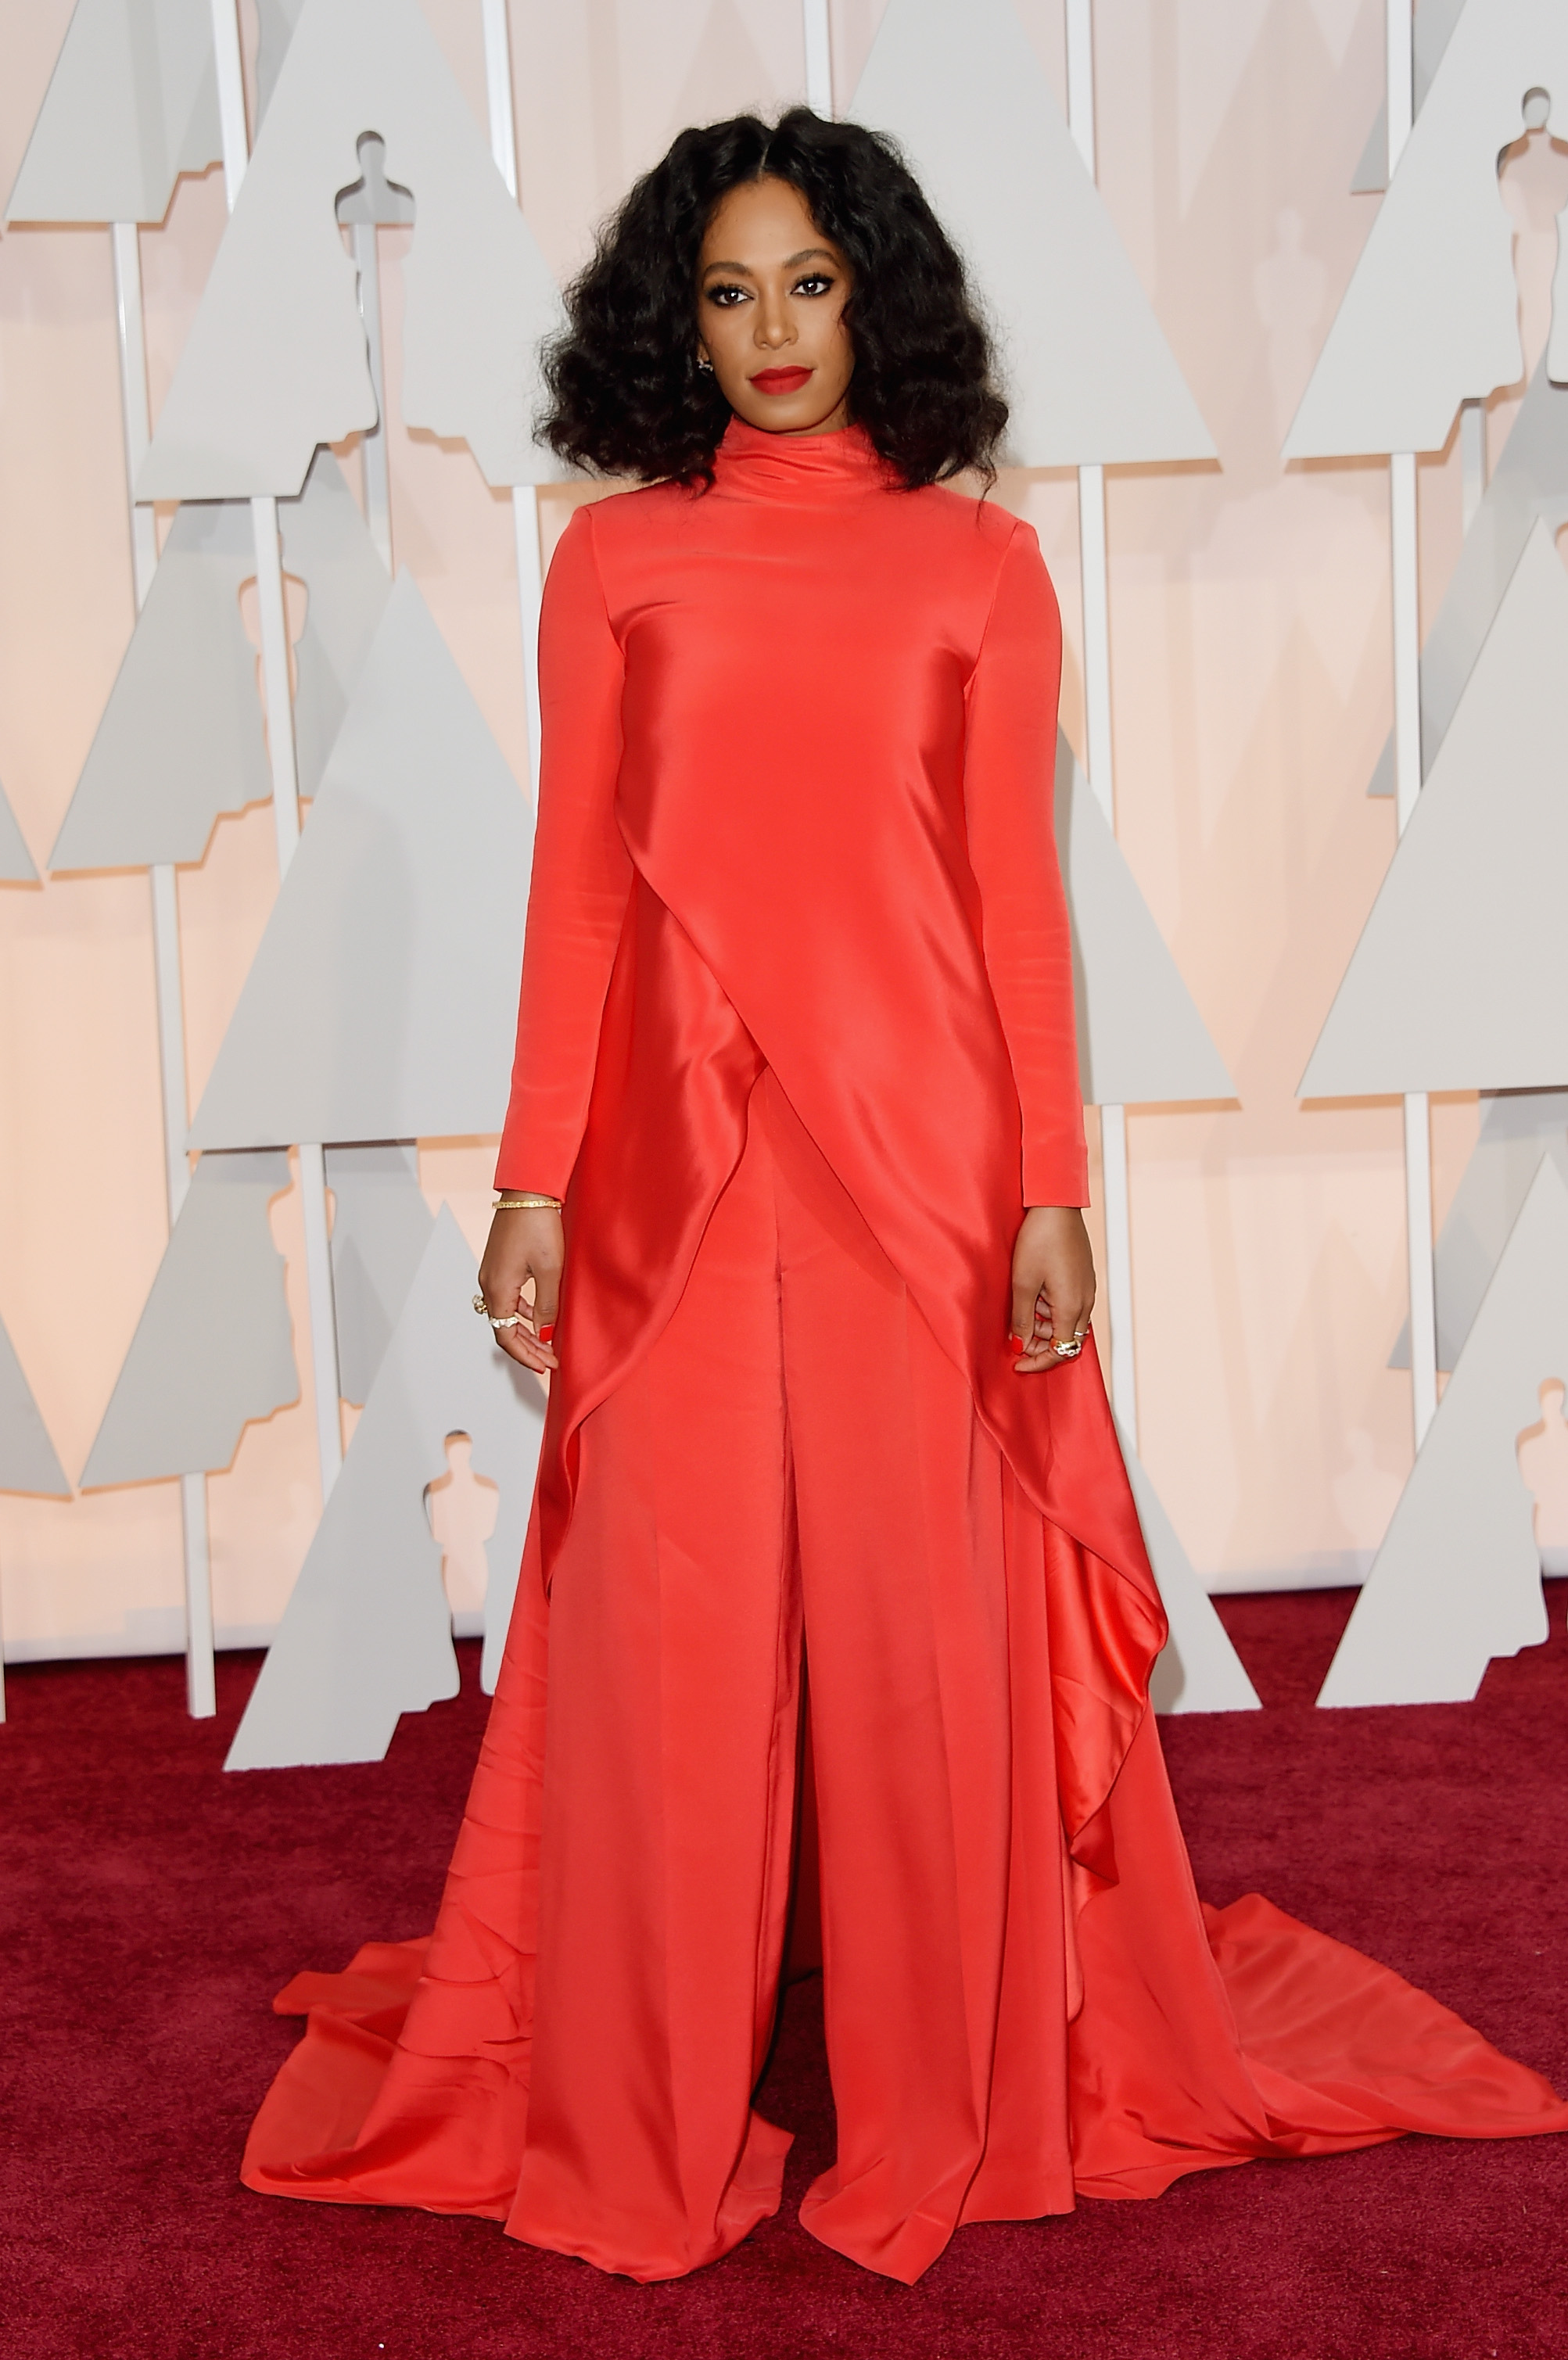 Solange Knowles Loses Wedding Ring During New Orleans Parade: Solange Knowles New Wedding Ring At Reisefeber.org